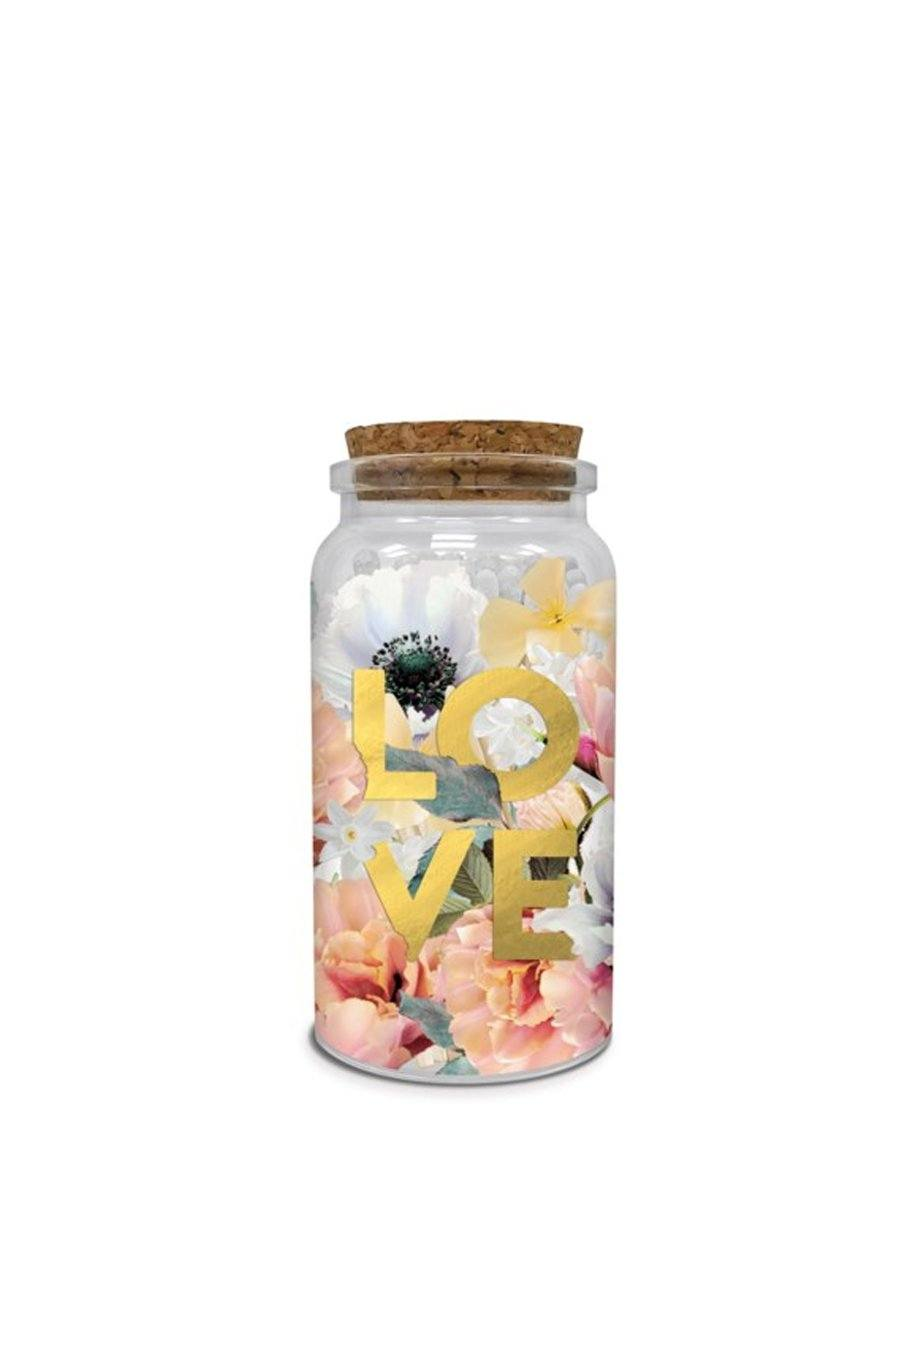 Love matches Printed Glass Jar - Shore